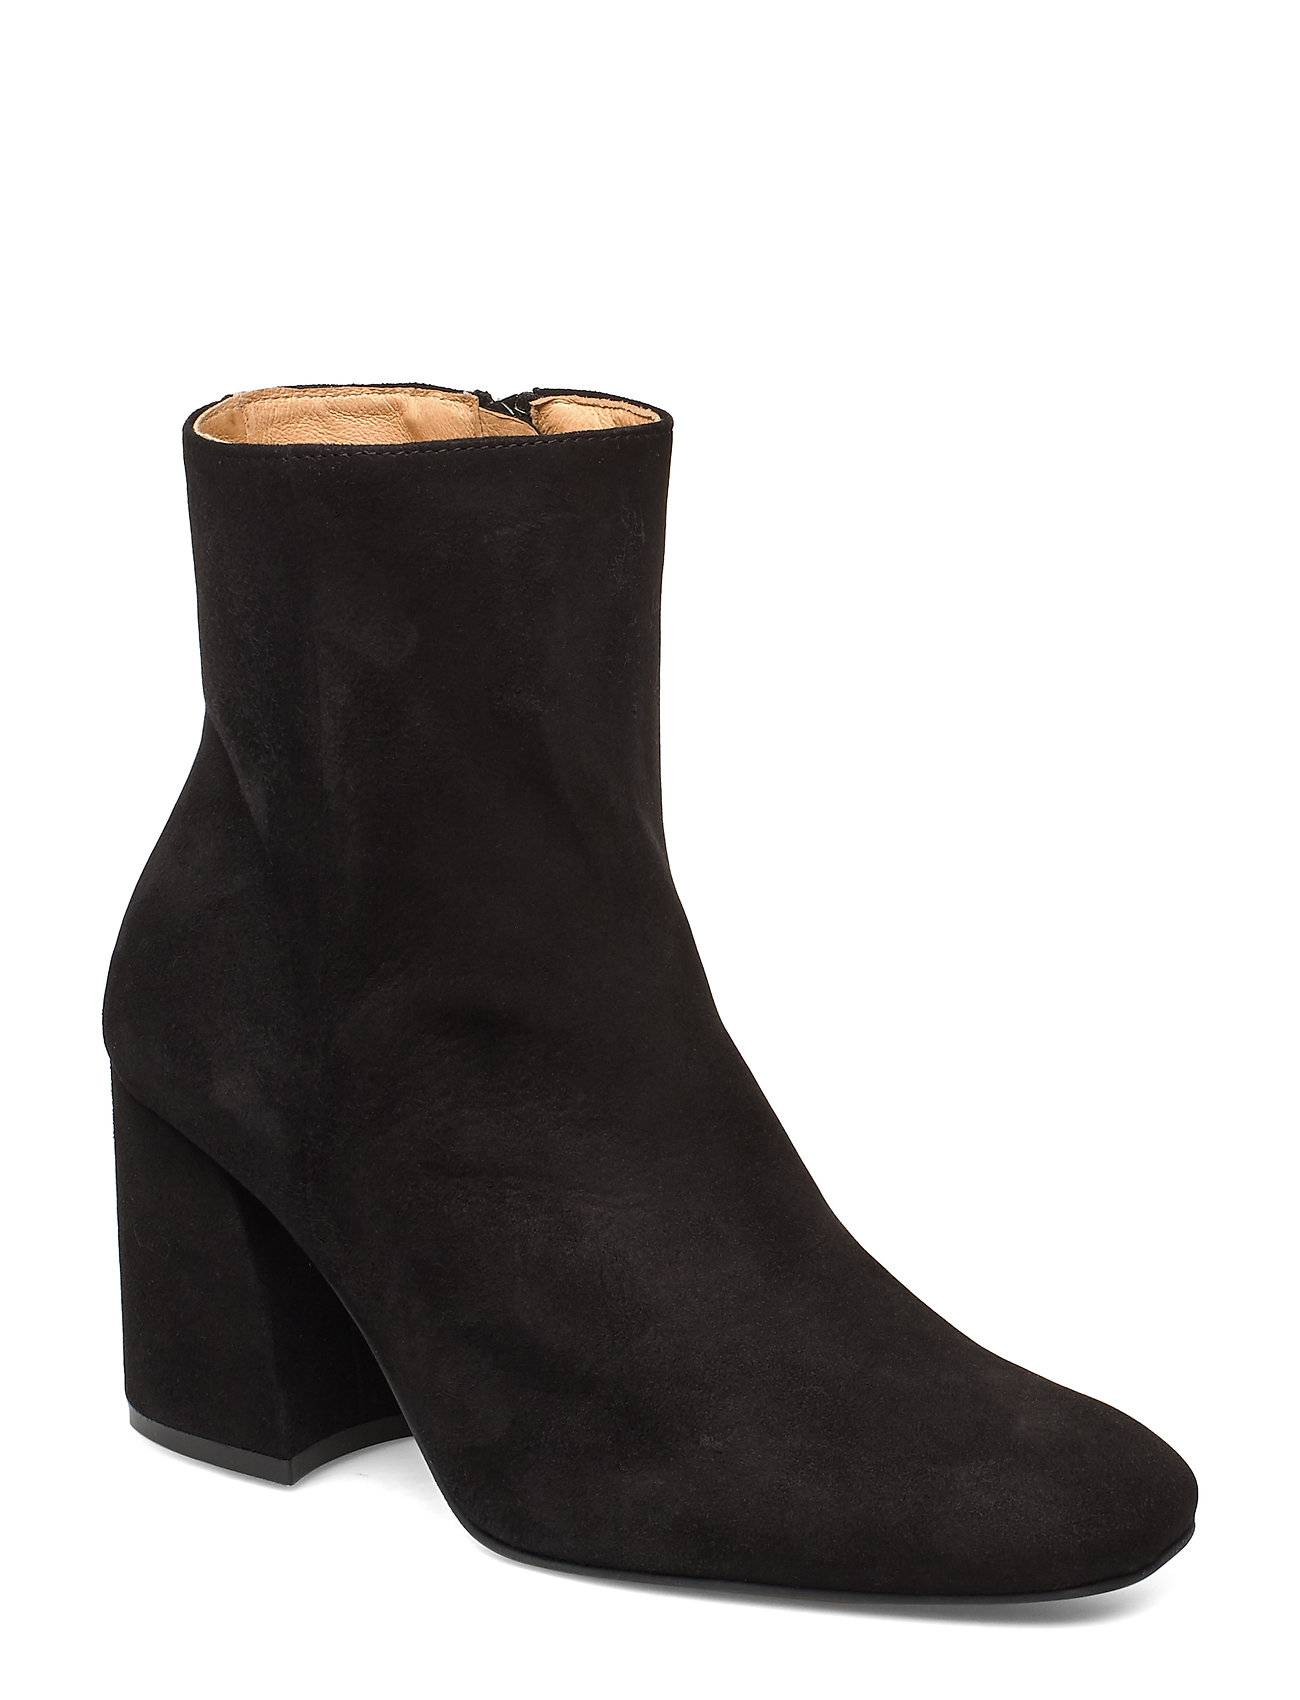 ANNY NORD Ms Steinem Shoes Boots Ankle Boots Ankle Boots With Heel Musta